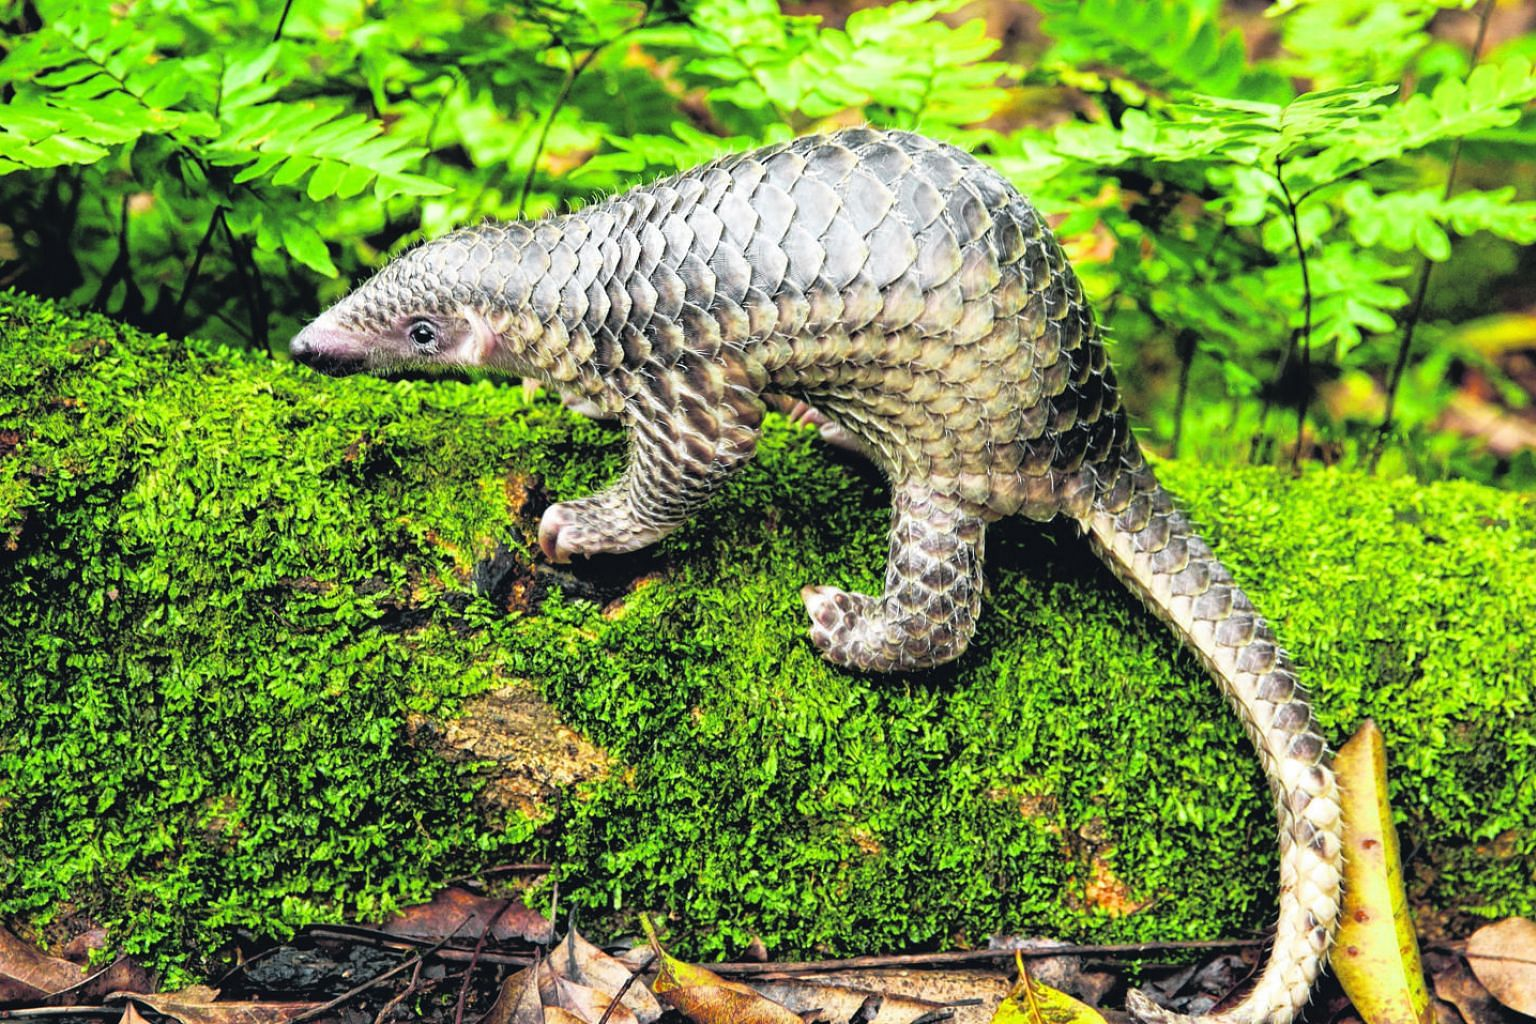 The Sunda pangolin, a Singapore native, is largely nocturnal and, therefore, most in danger at night when it is searching for food or mates. On top of being slow-moving, it rolls into a ball instead of running away when it detects danger, which is no